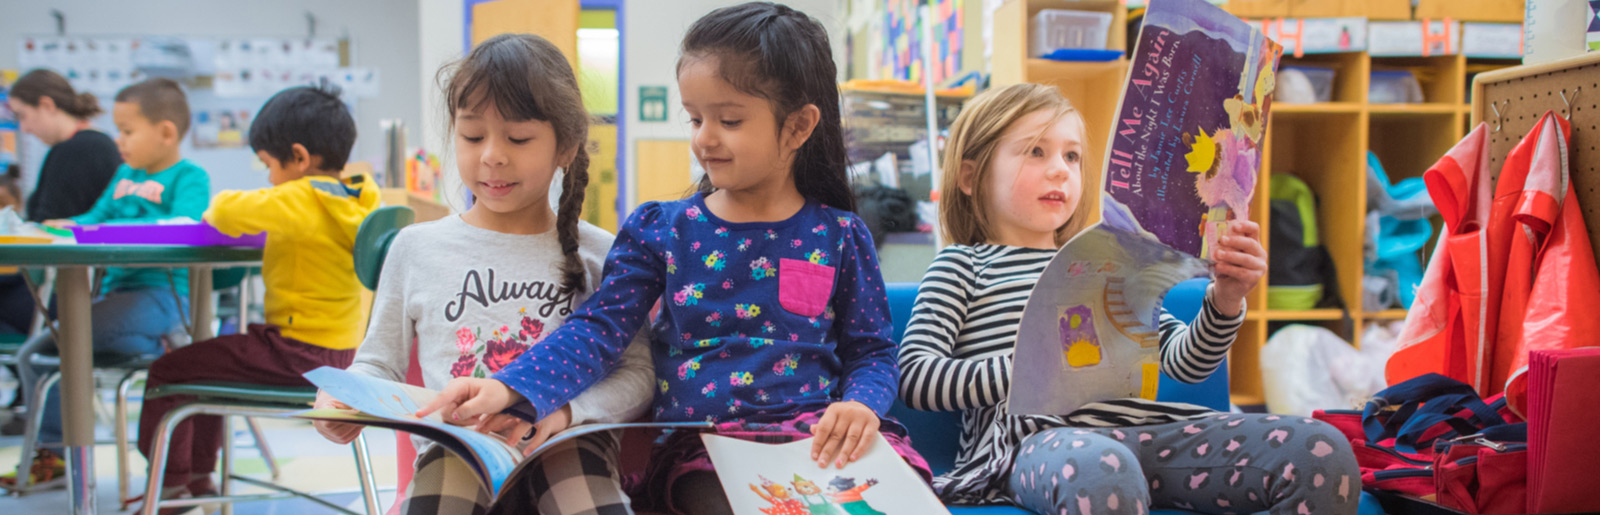 three girls looking at story books in classroom